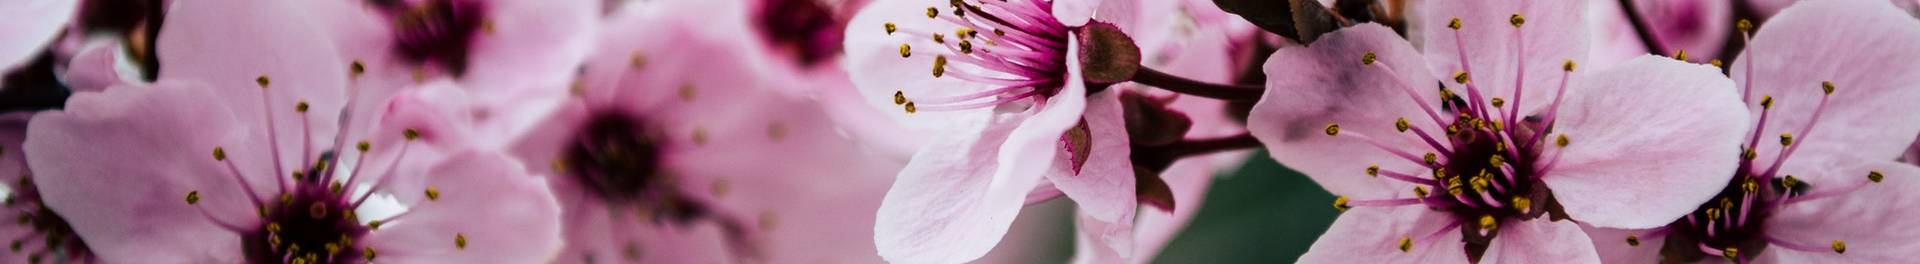 Image of pink plum or cherry blossoms